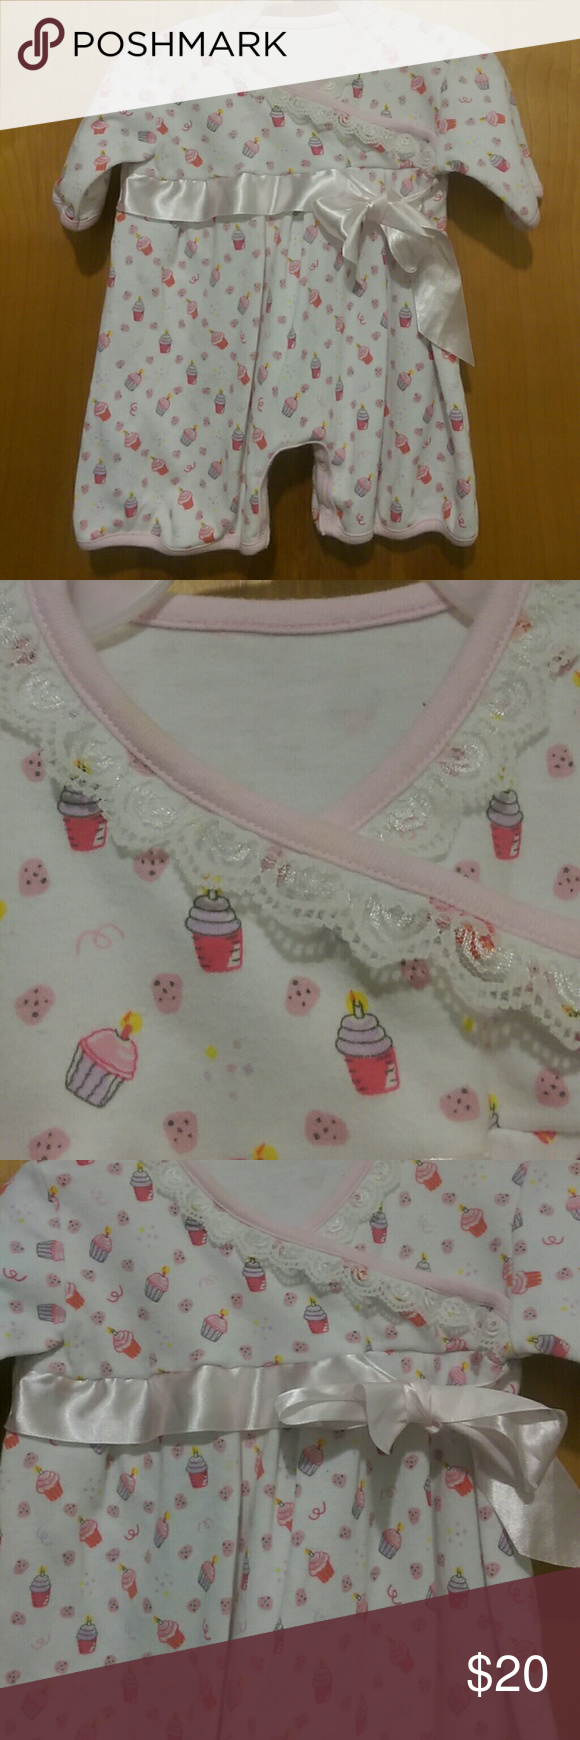 3 25 Stephan Baby 12m Birthday Romper Designer Baby Clothes Pink